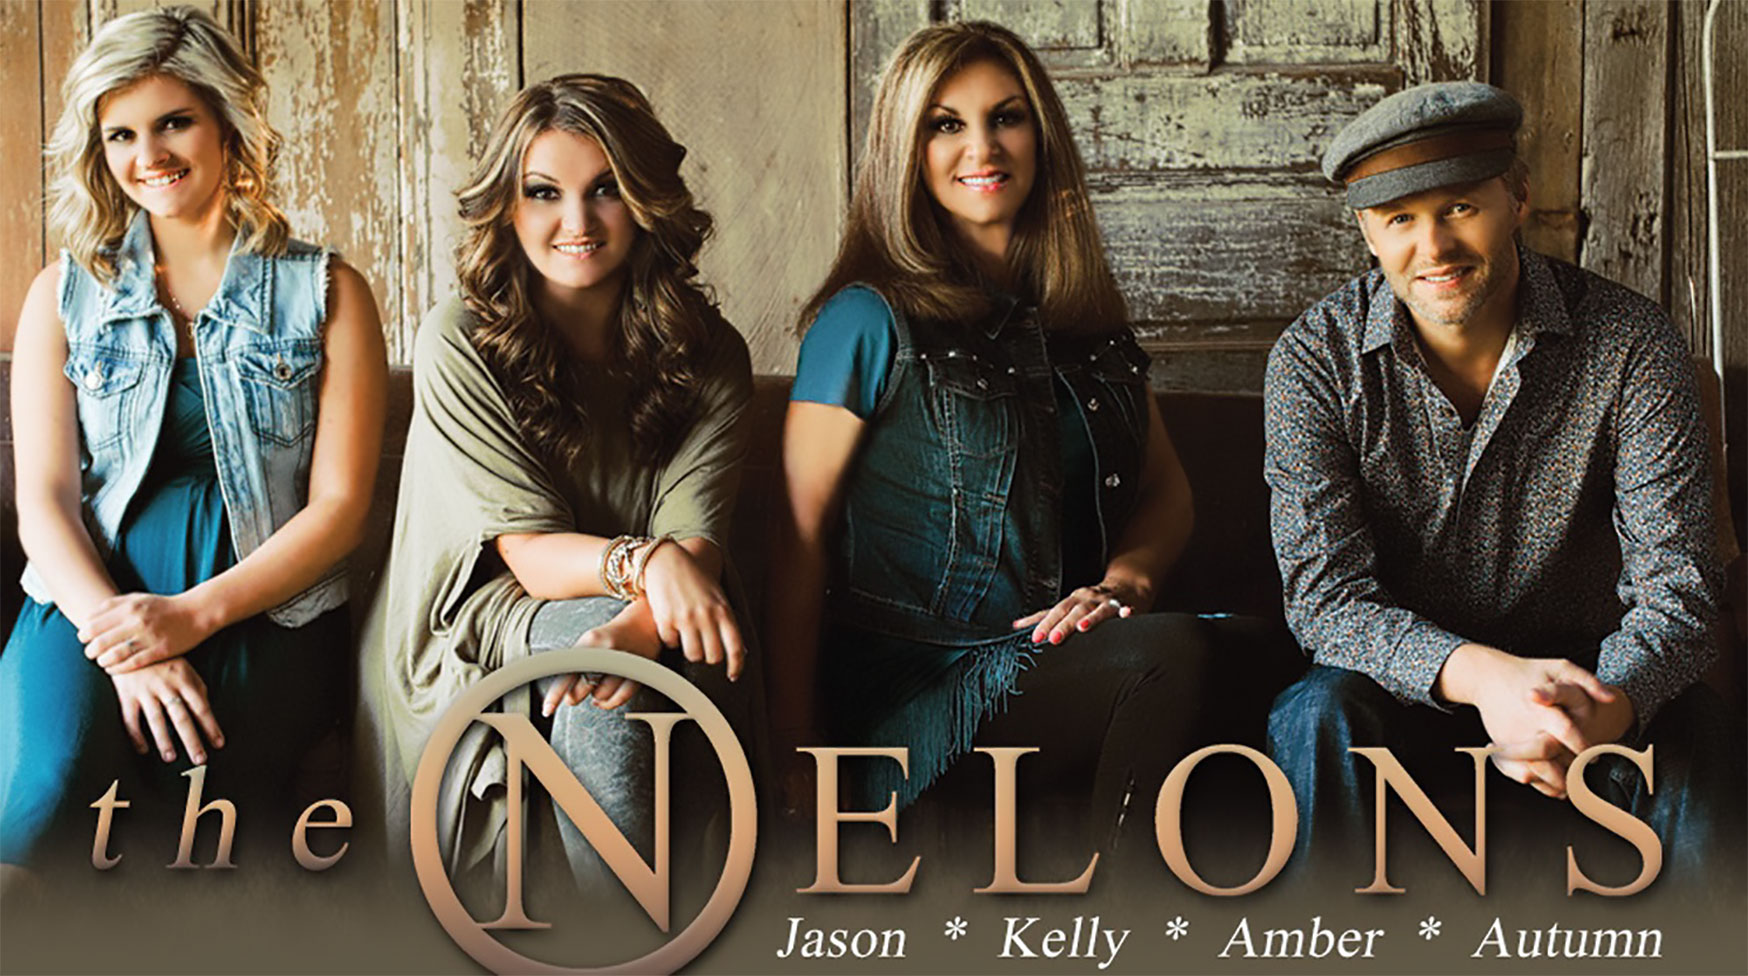 The Nelons